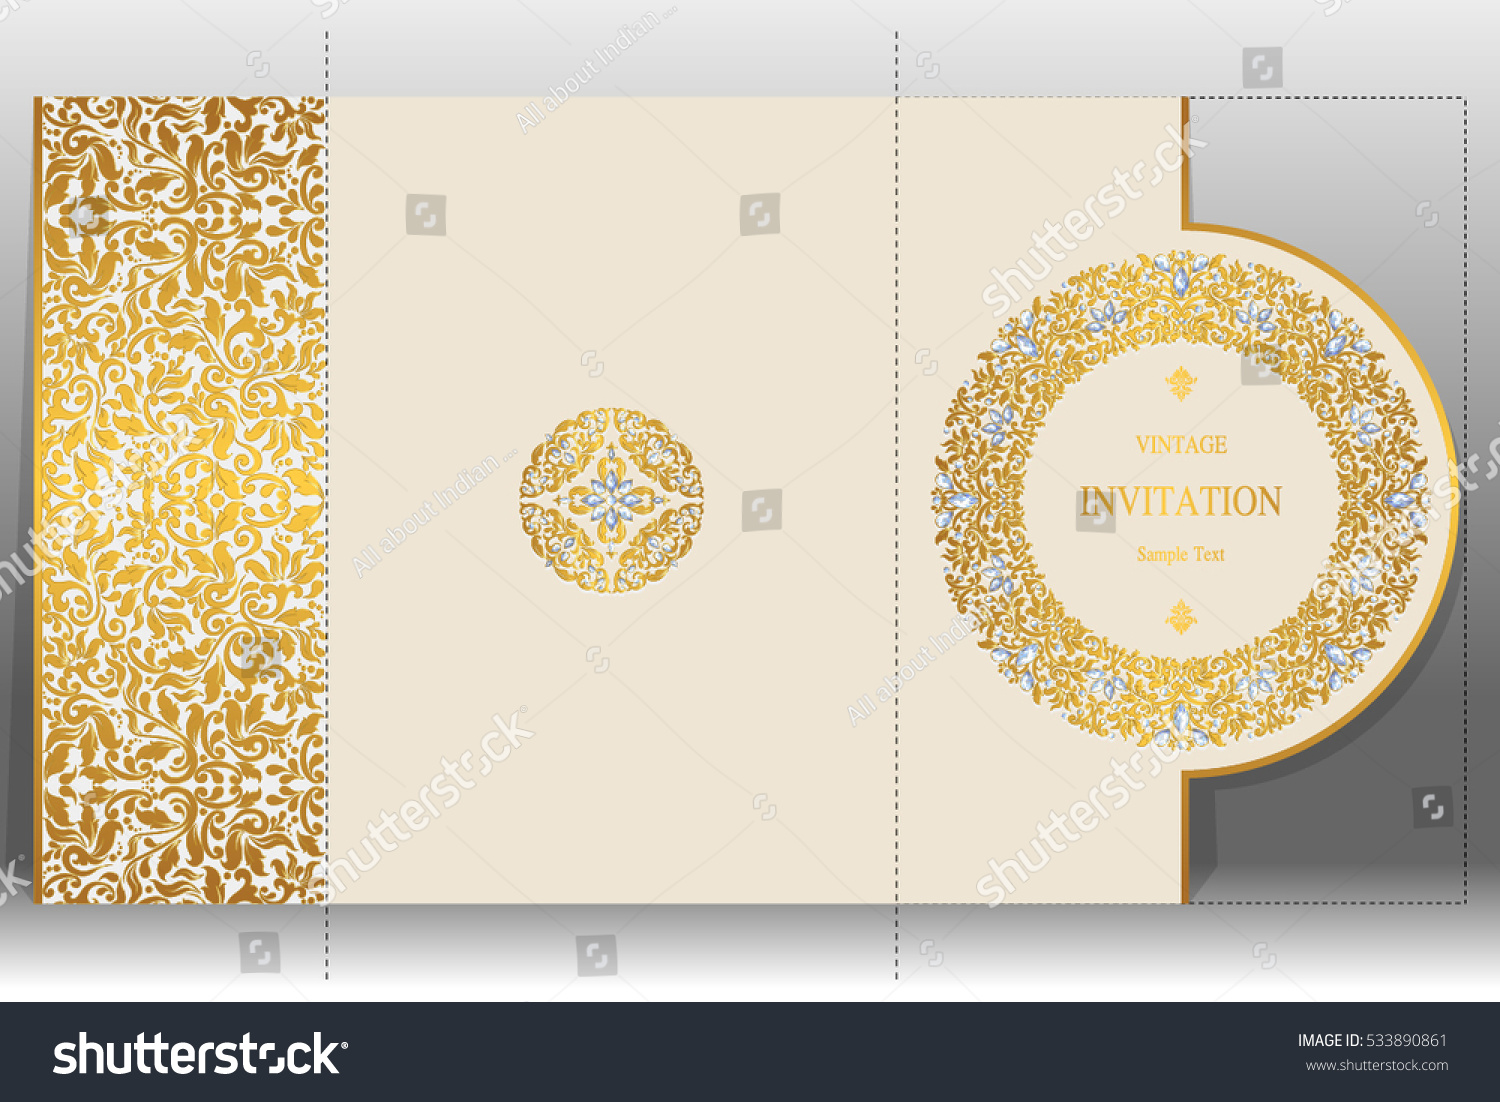 Wedding Invitation Card Templates Gold Patterned Stock Image